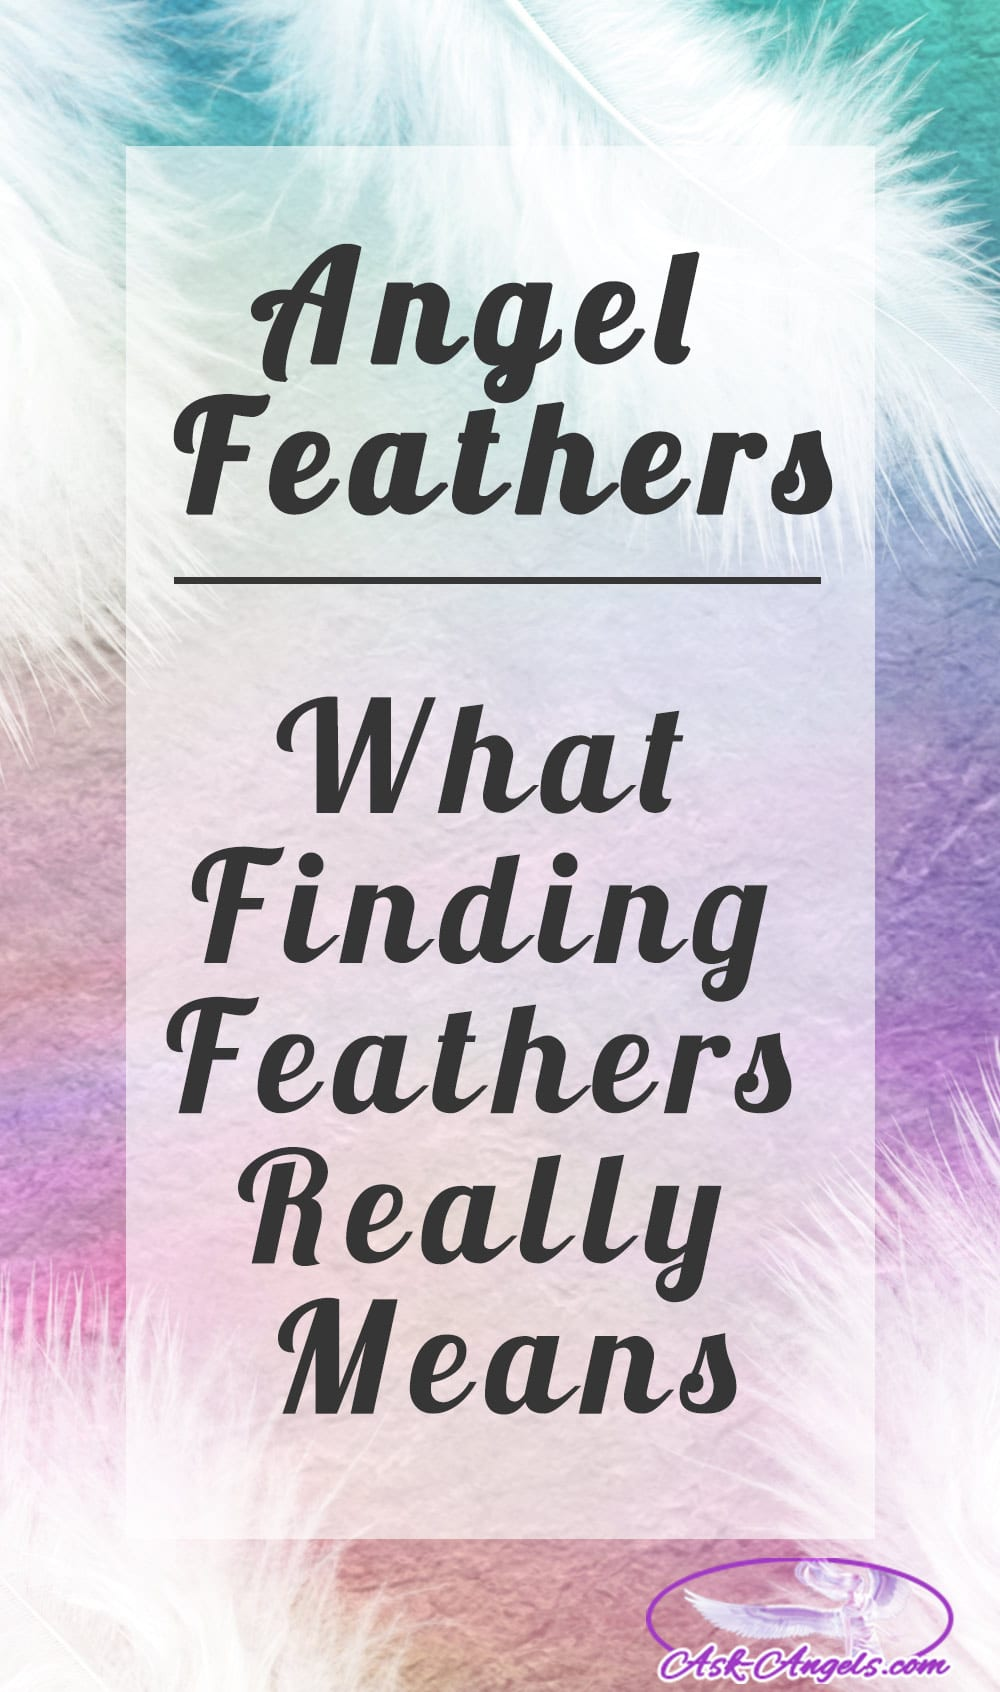 fb52a8d73 In addition, here is a quick look at some of the additional meaning certain colored  feathers may have.